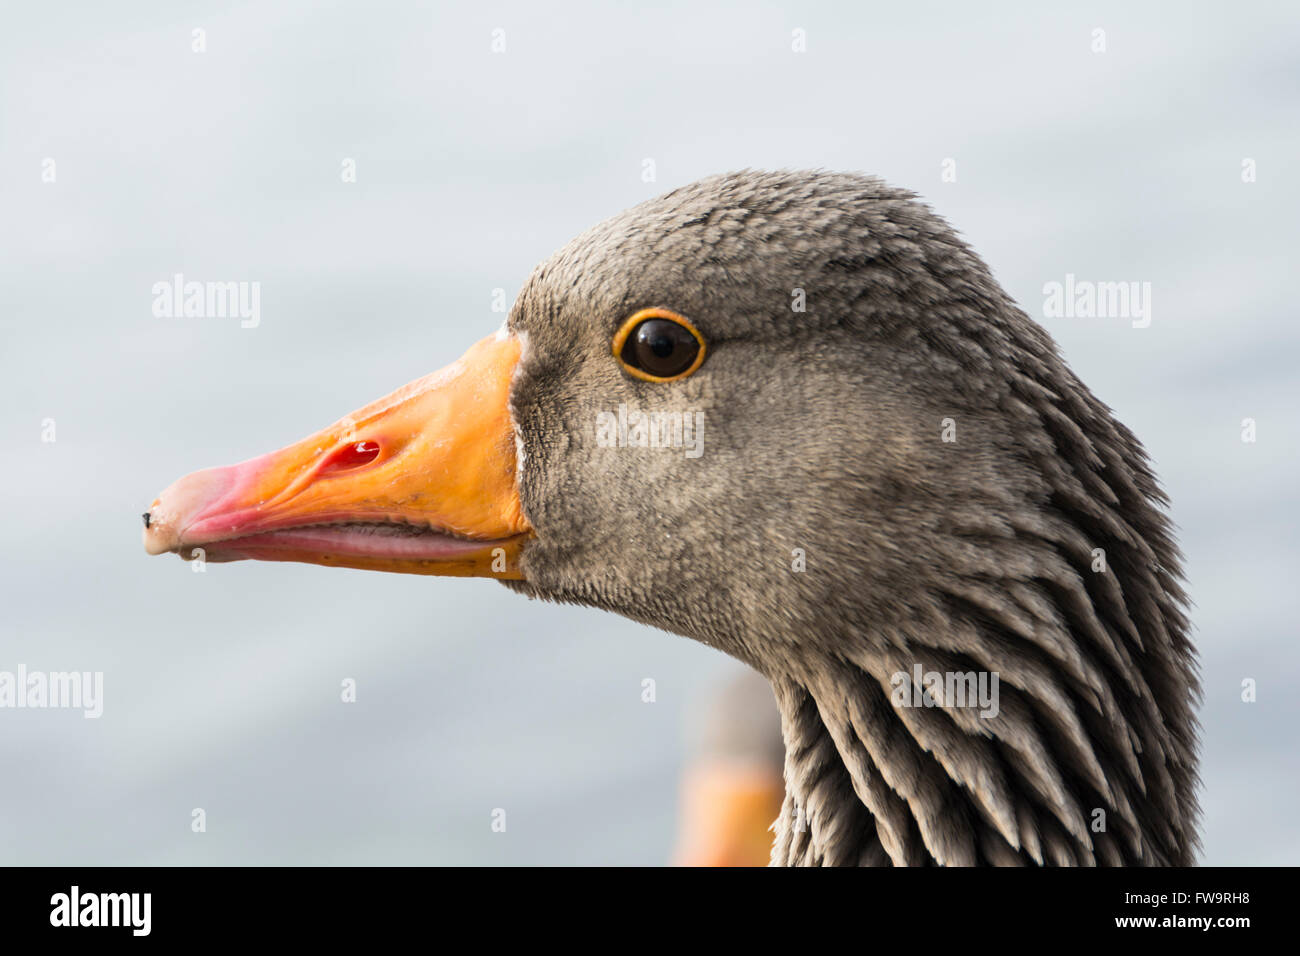 The Greylag goose, or Anser anser,  is a bird in the waterfowl family Anatidae - Stock Image